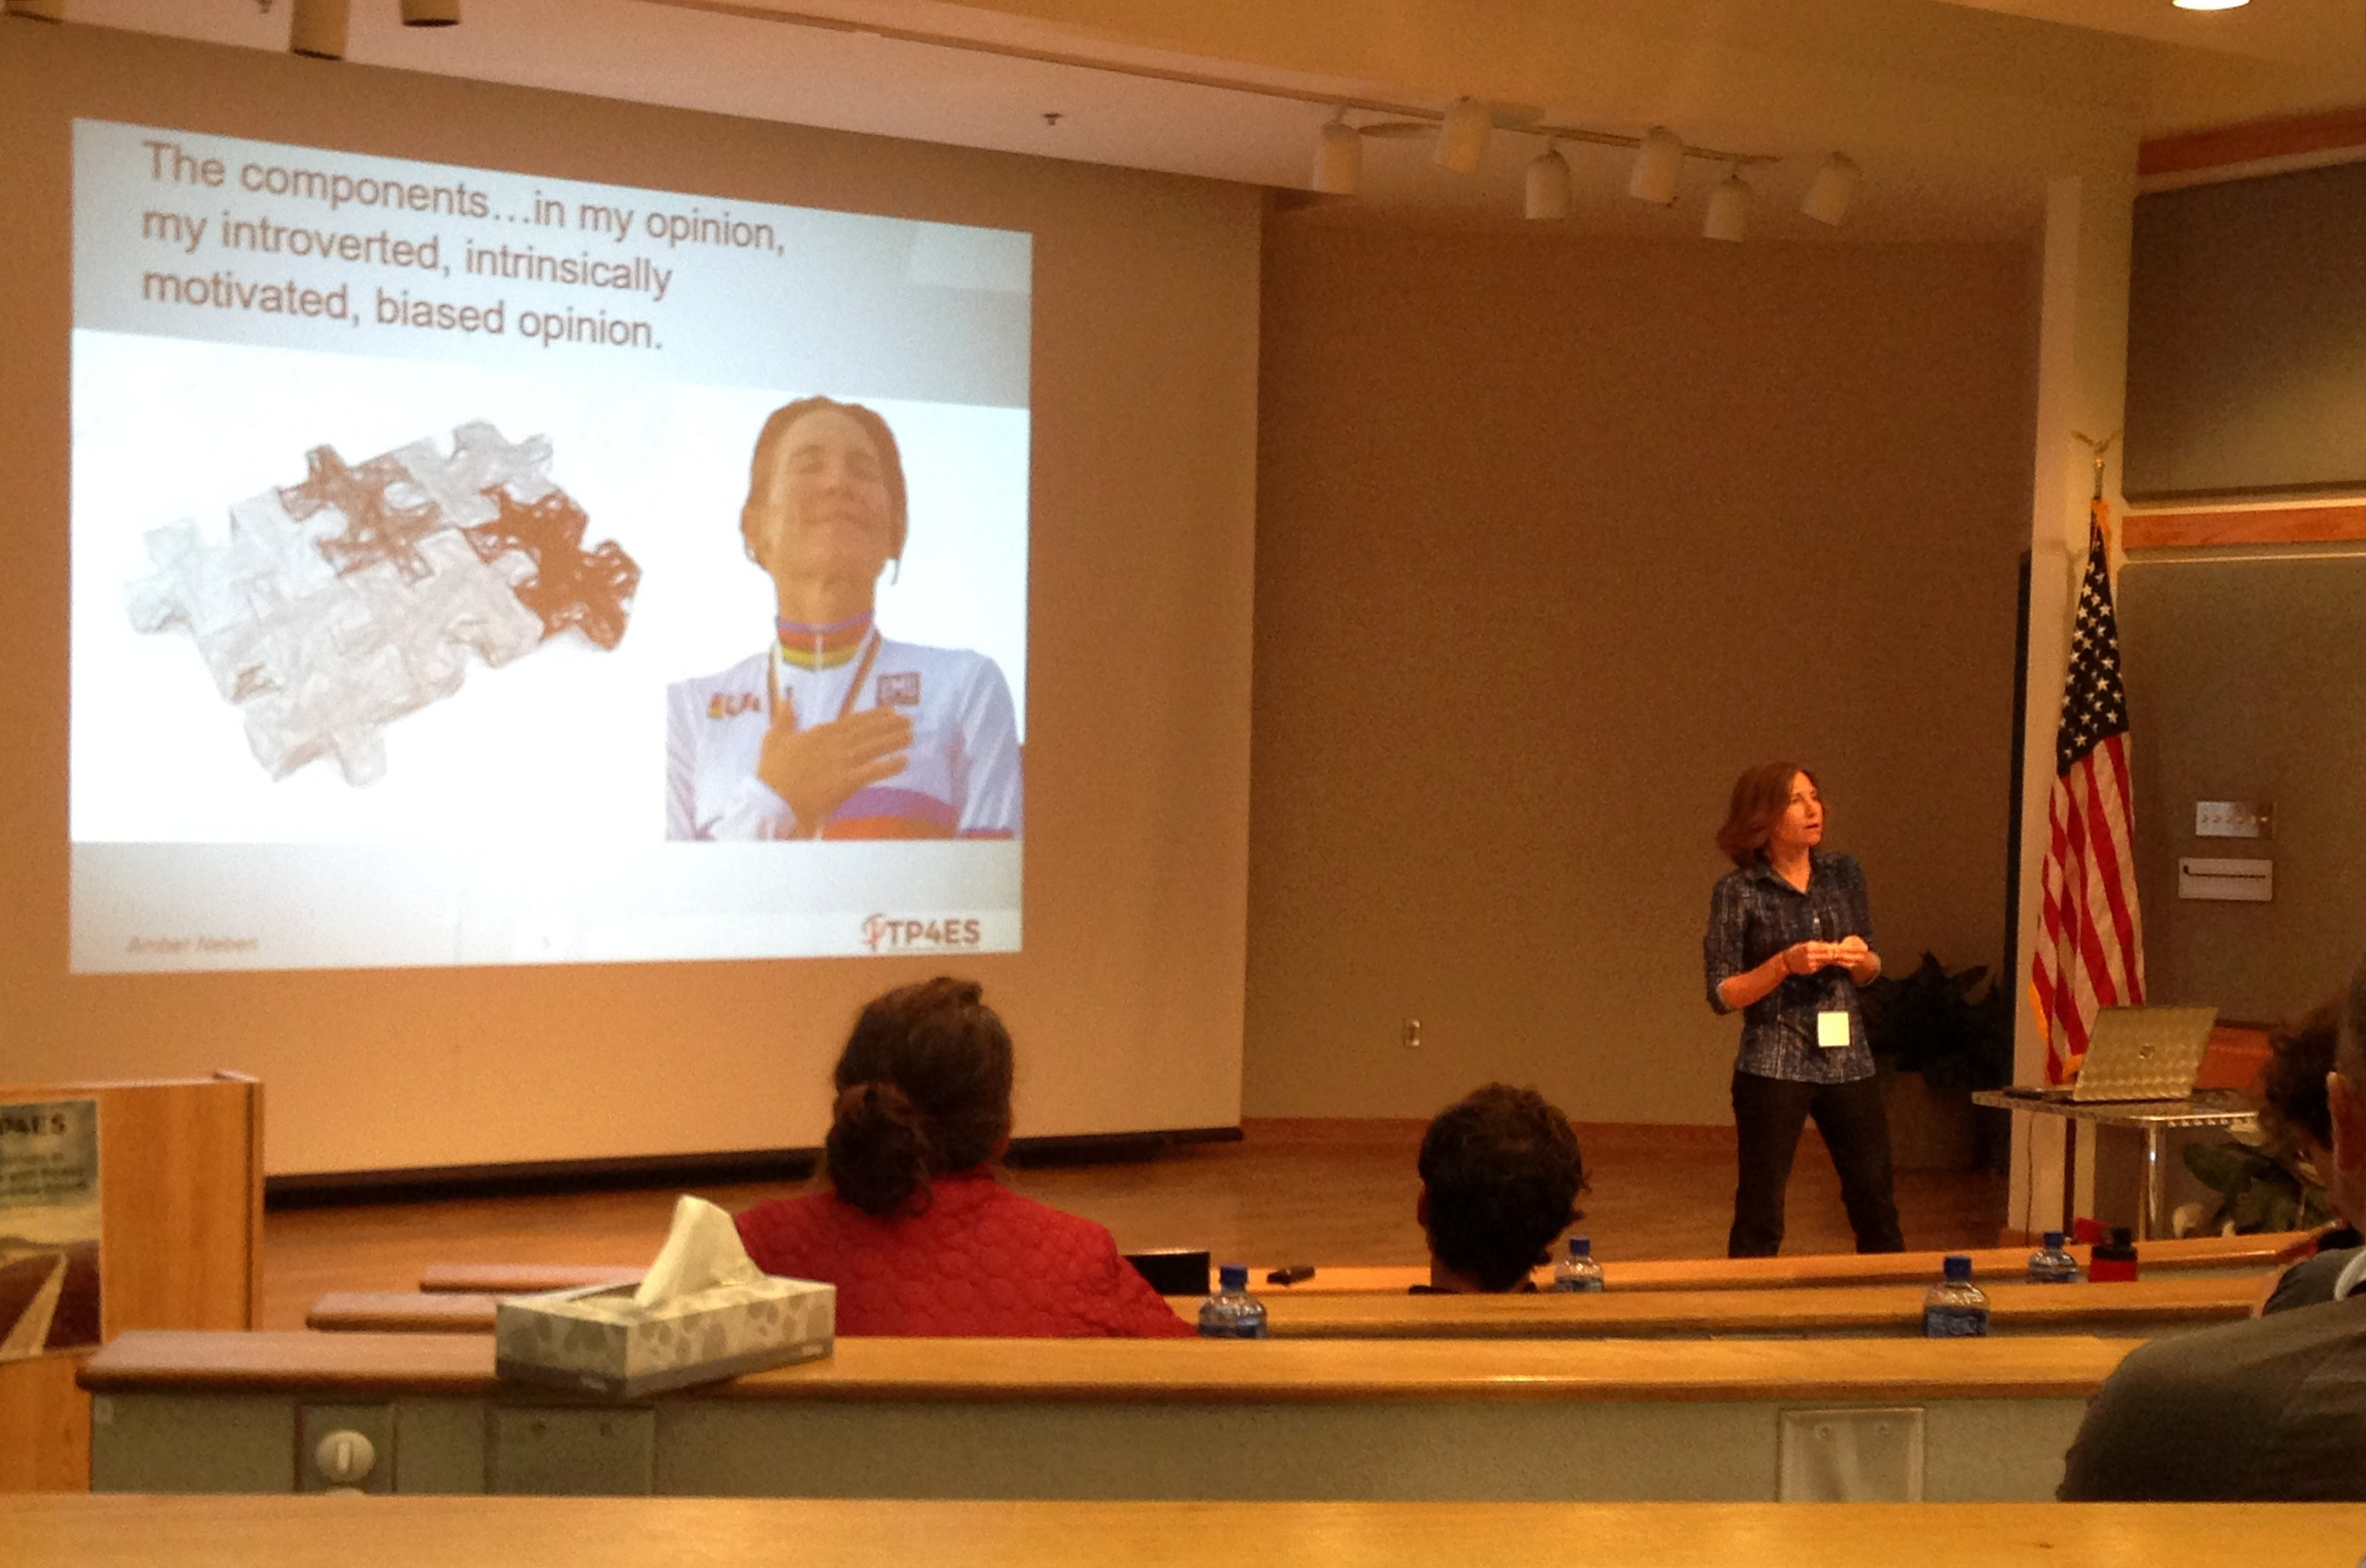 Amber Neben speaking at the 2016 ITP4ES conference